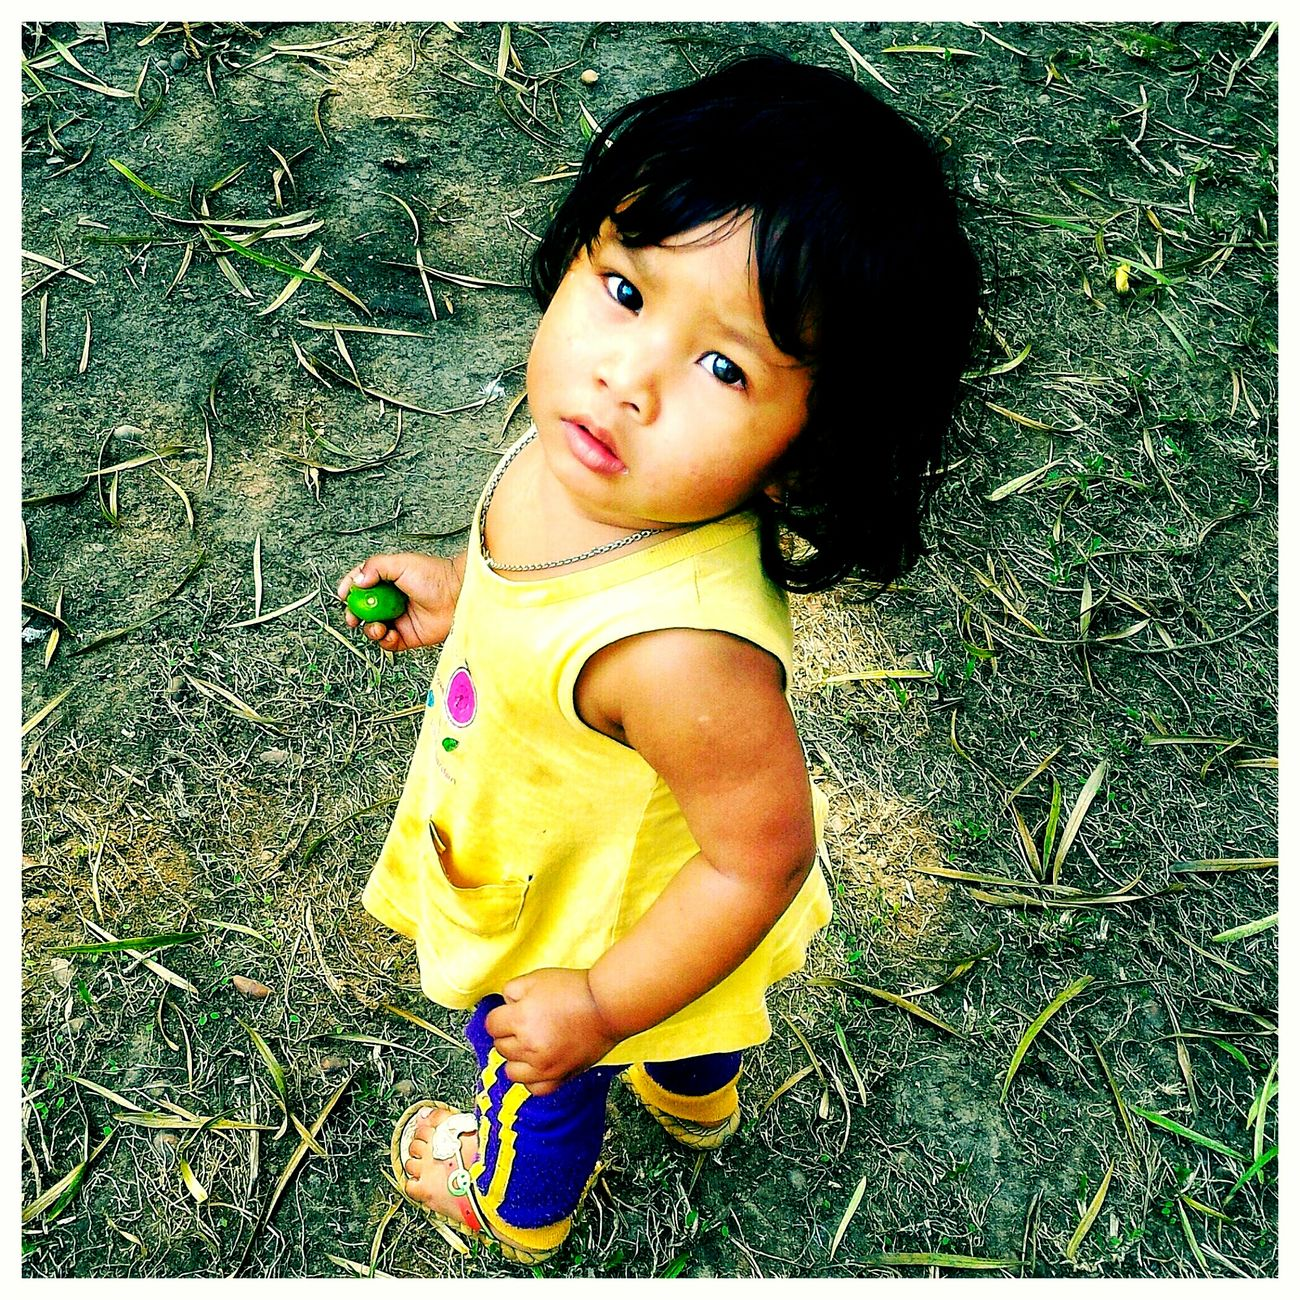 I can't stop loving her... Childhood Real People Portrait Cute Day People Outdoors One Person Looking At Camera Innocence Girls High Angle View Close-up Yellow Mobile Phone Photography Loveher